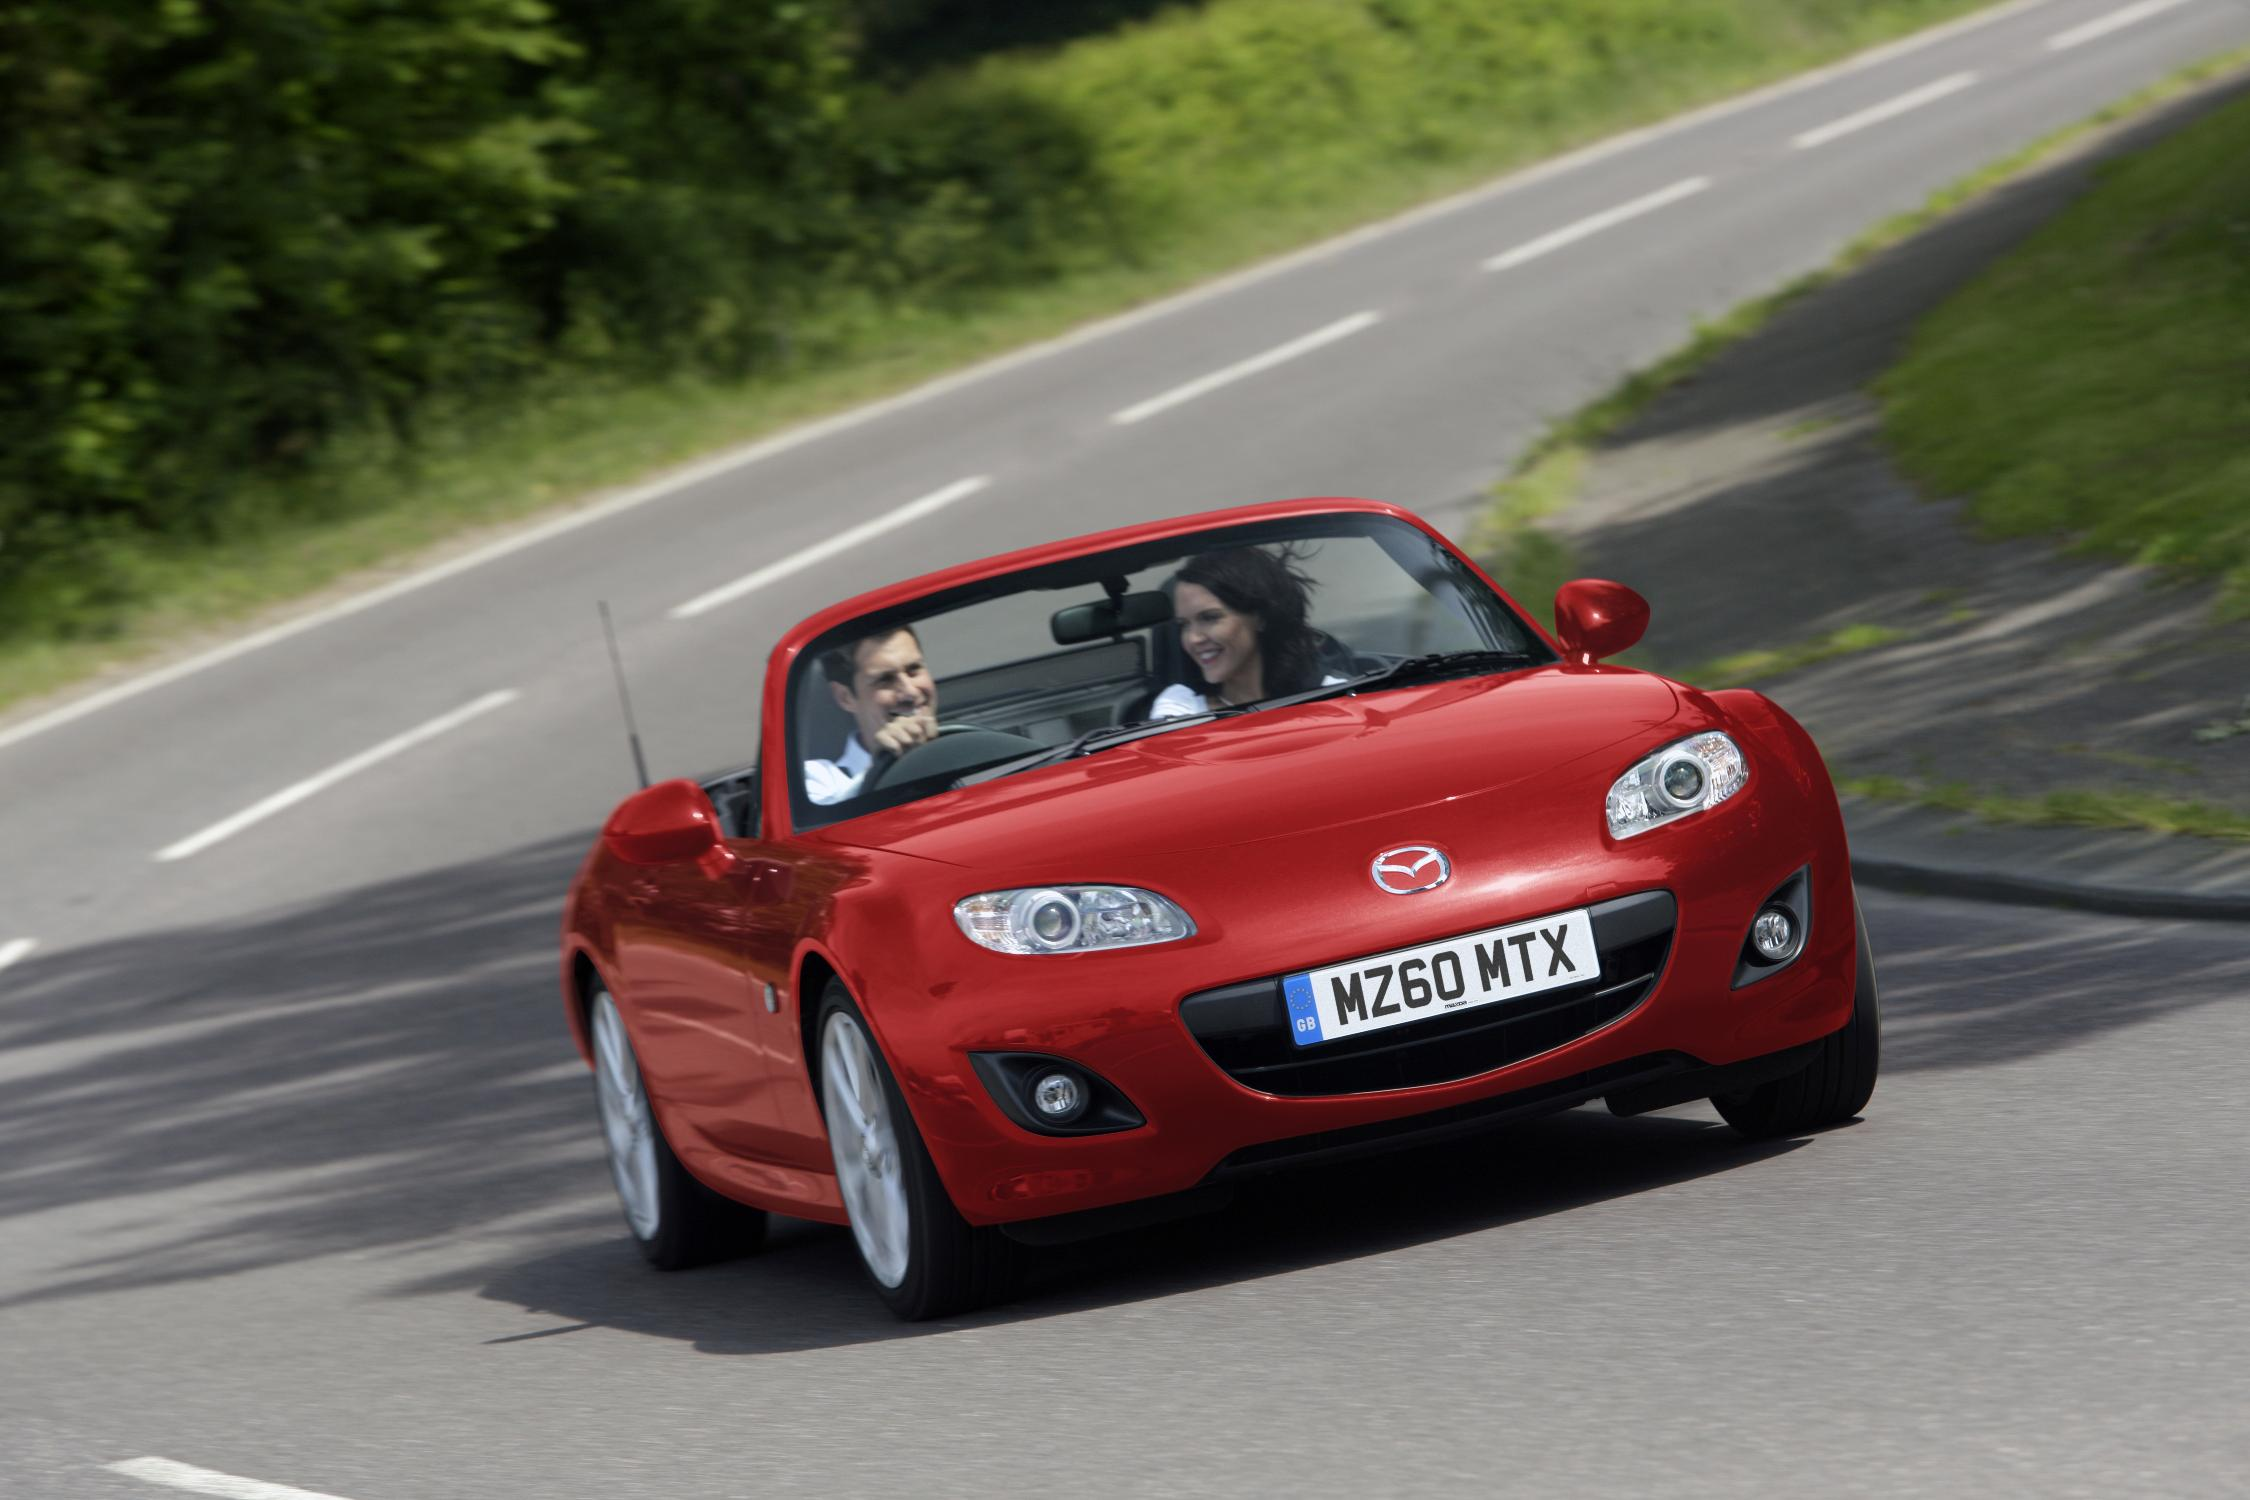 Too much sports car fun can damage your health, as our motoring man has discovered